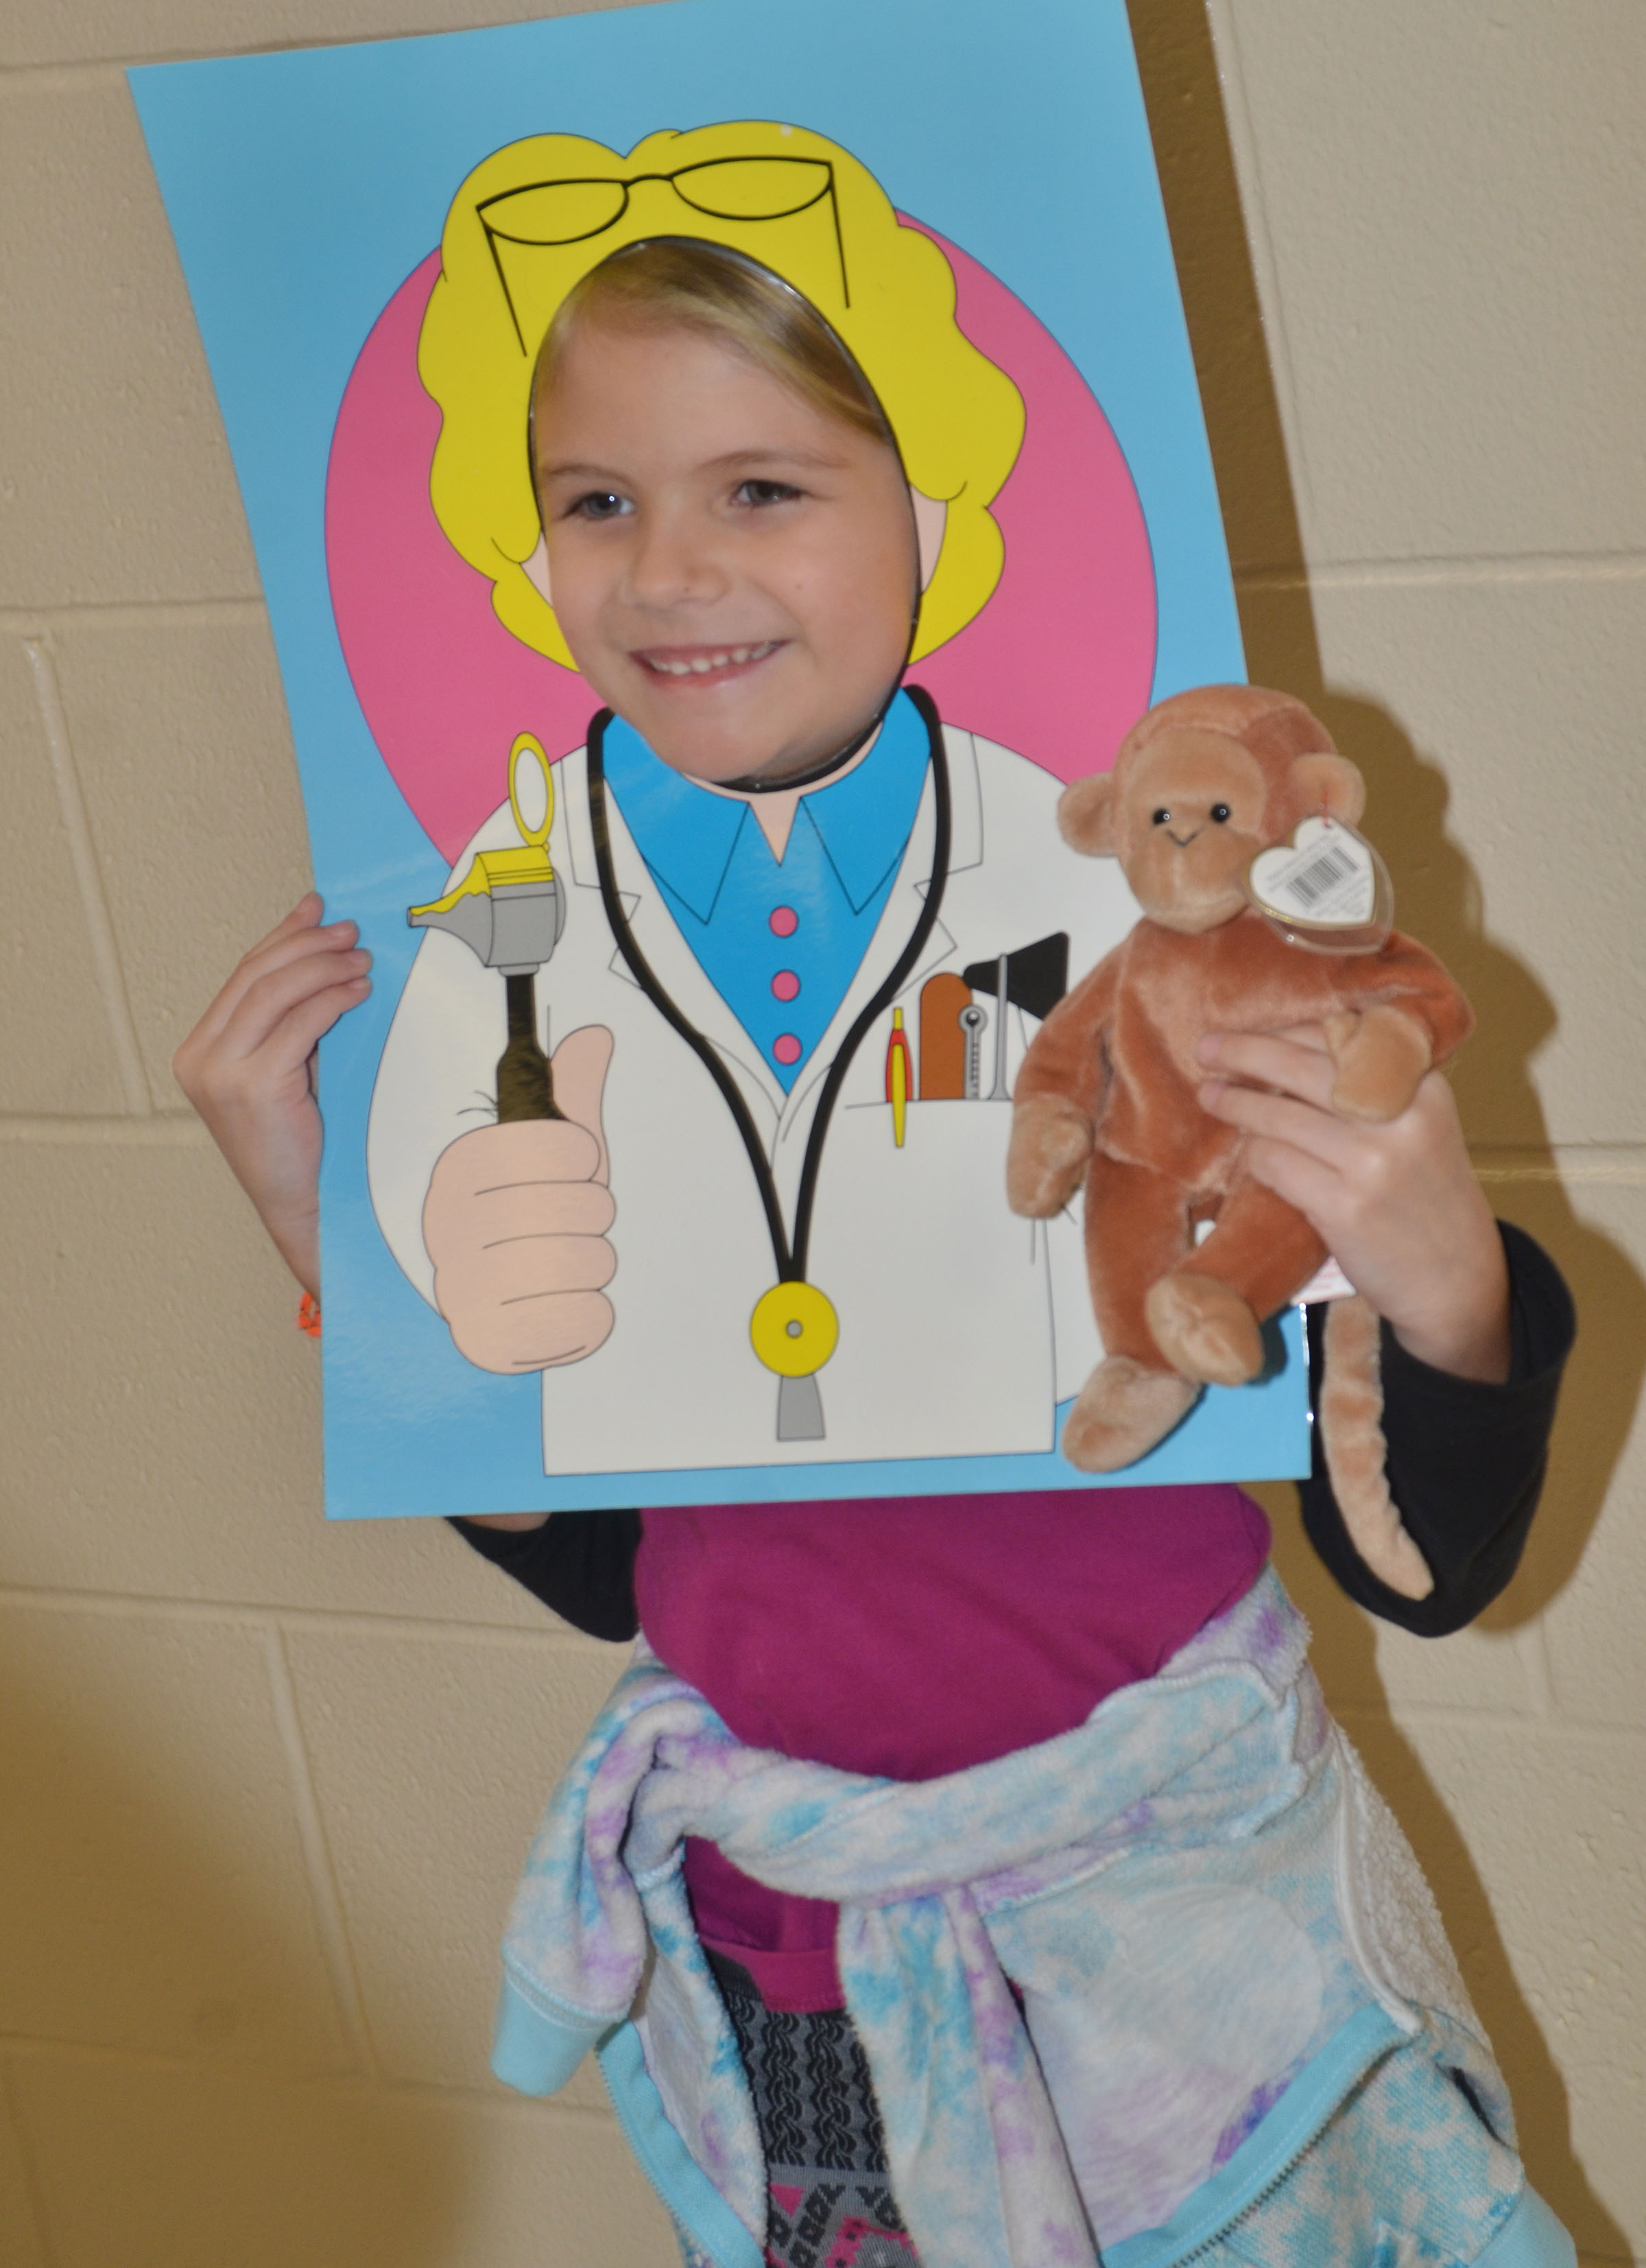 CES kindergartener Gracie Gebler says she wants to be a veterinarian.